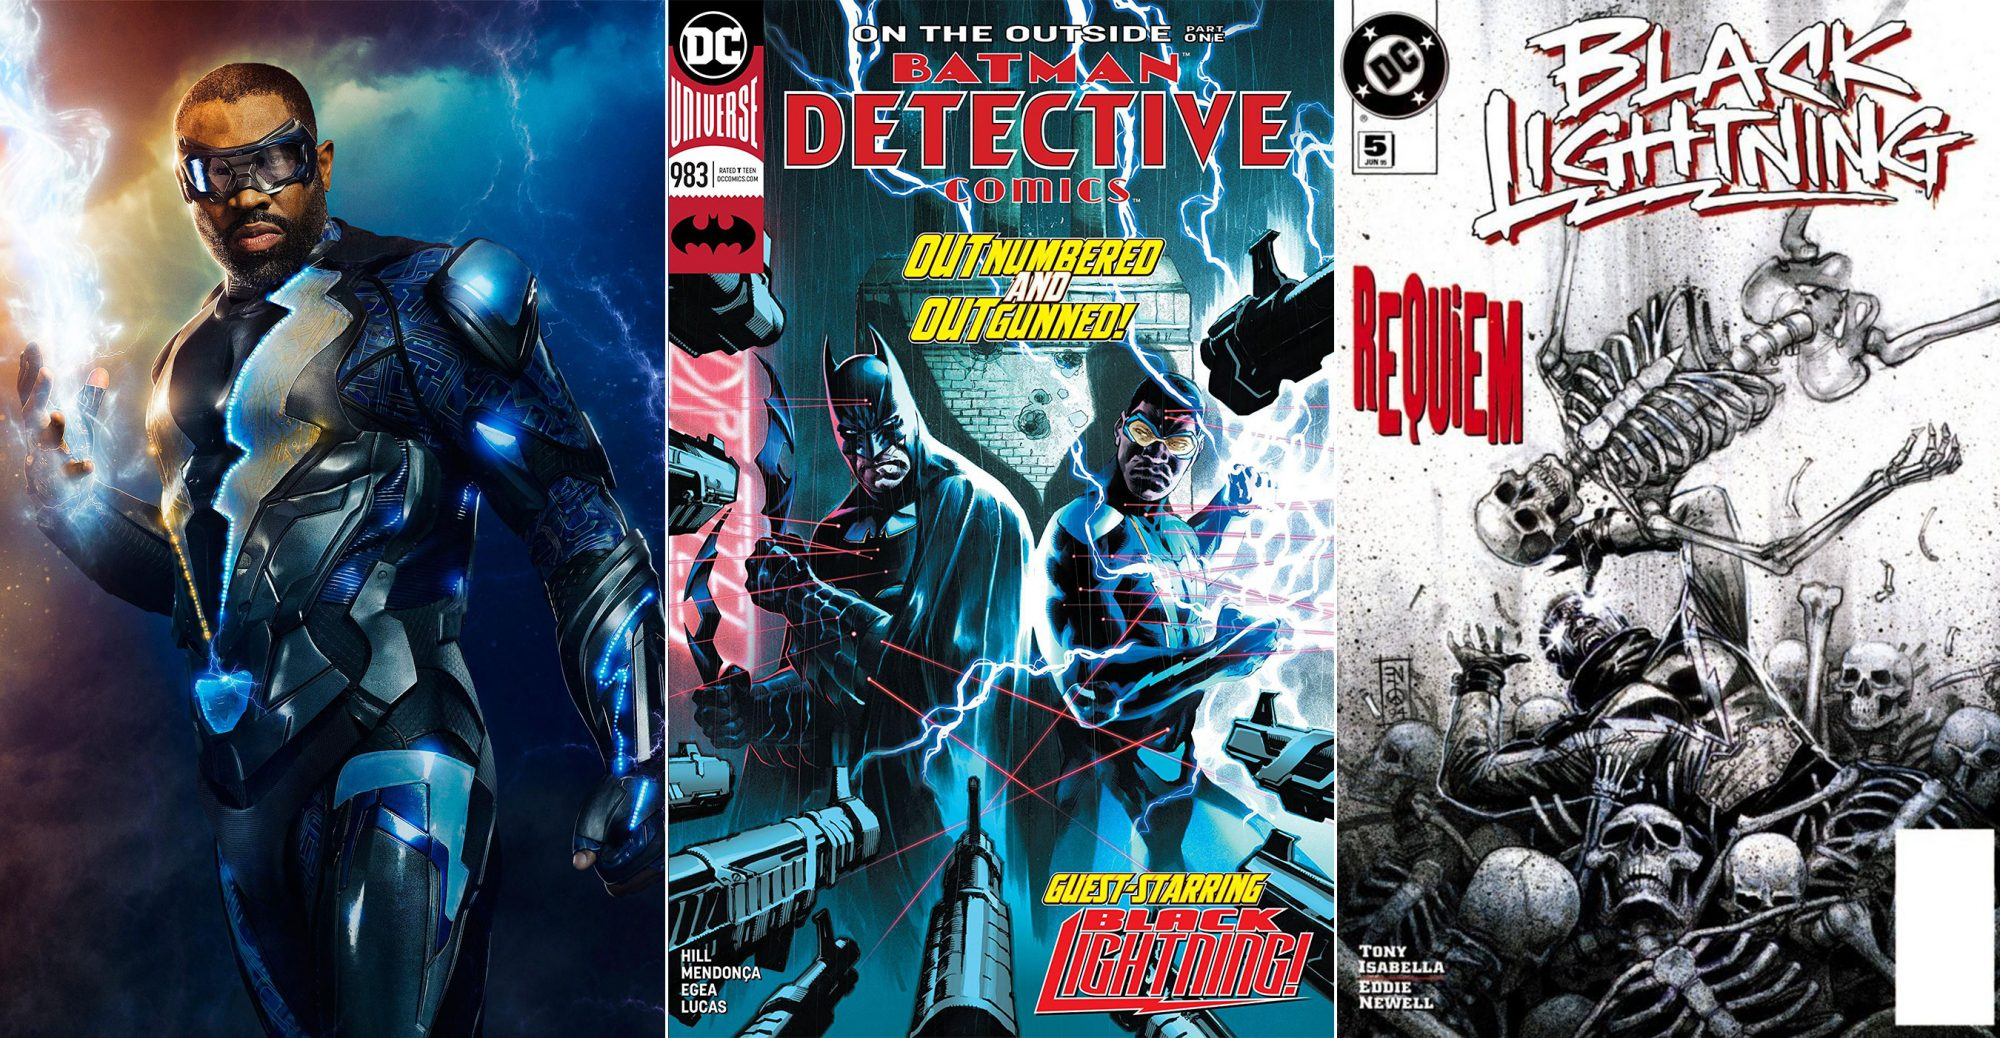 If you watch Black Lightning...then read Detective Comics (2016) #983-987 and Black Lightning (1995-1996) #5